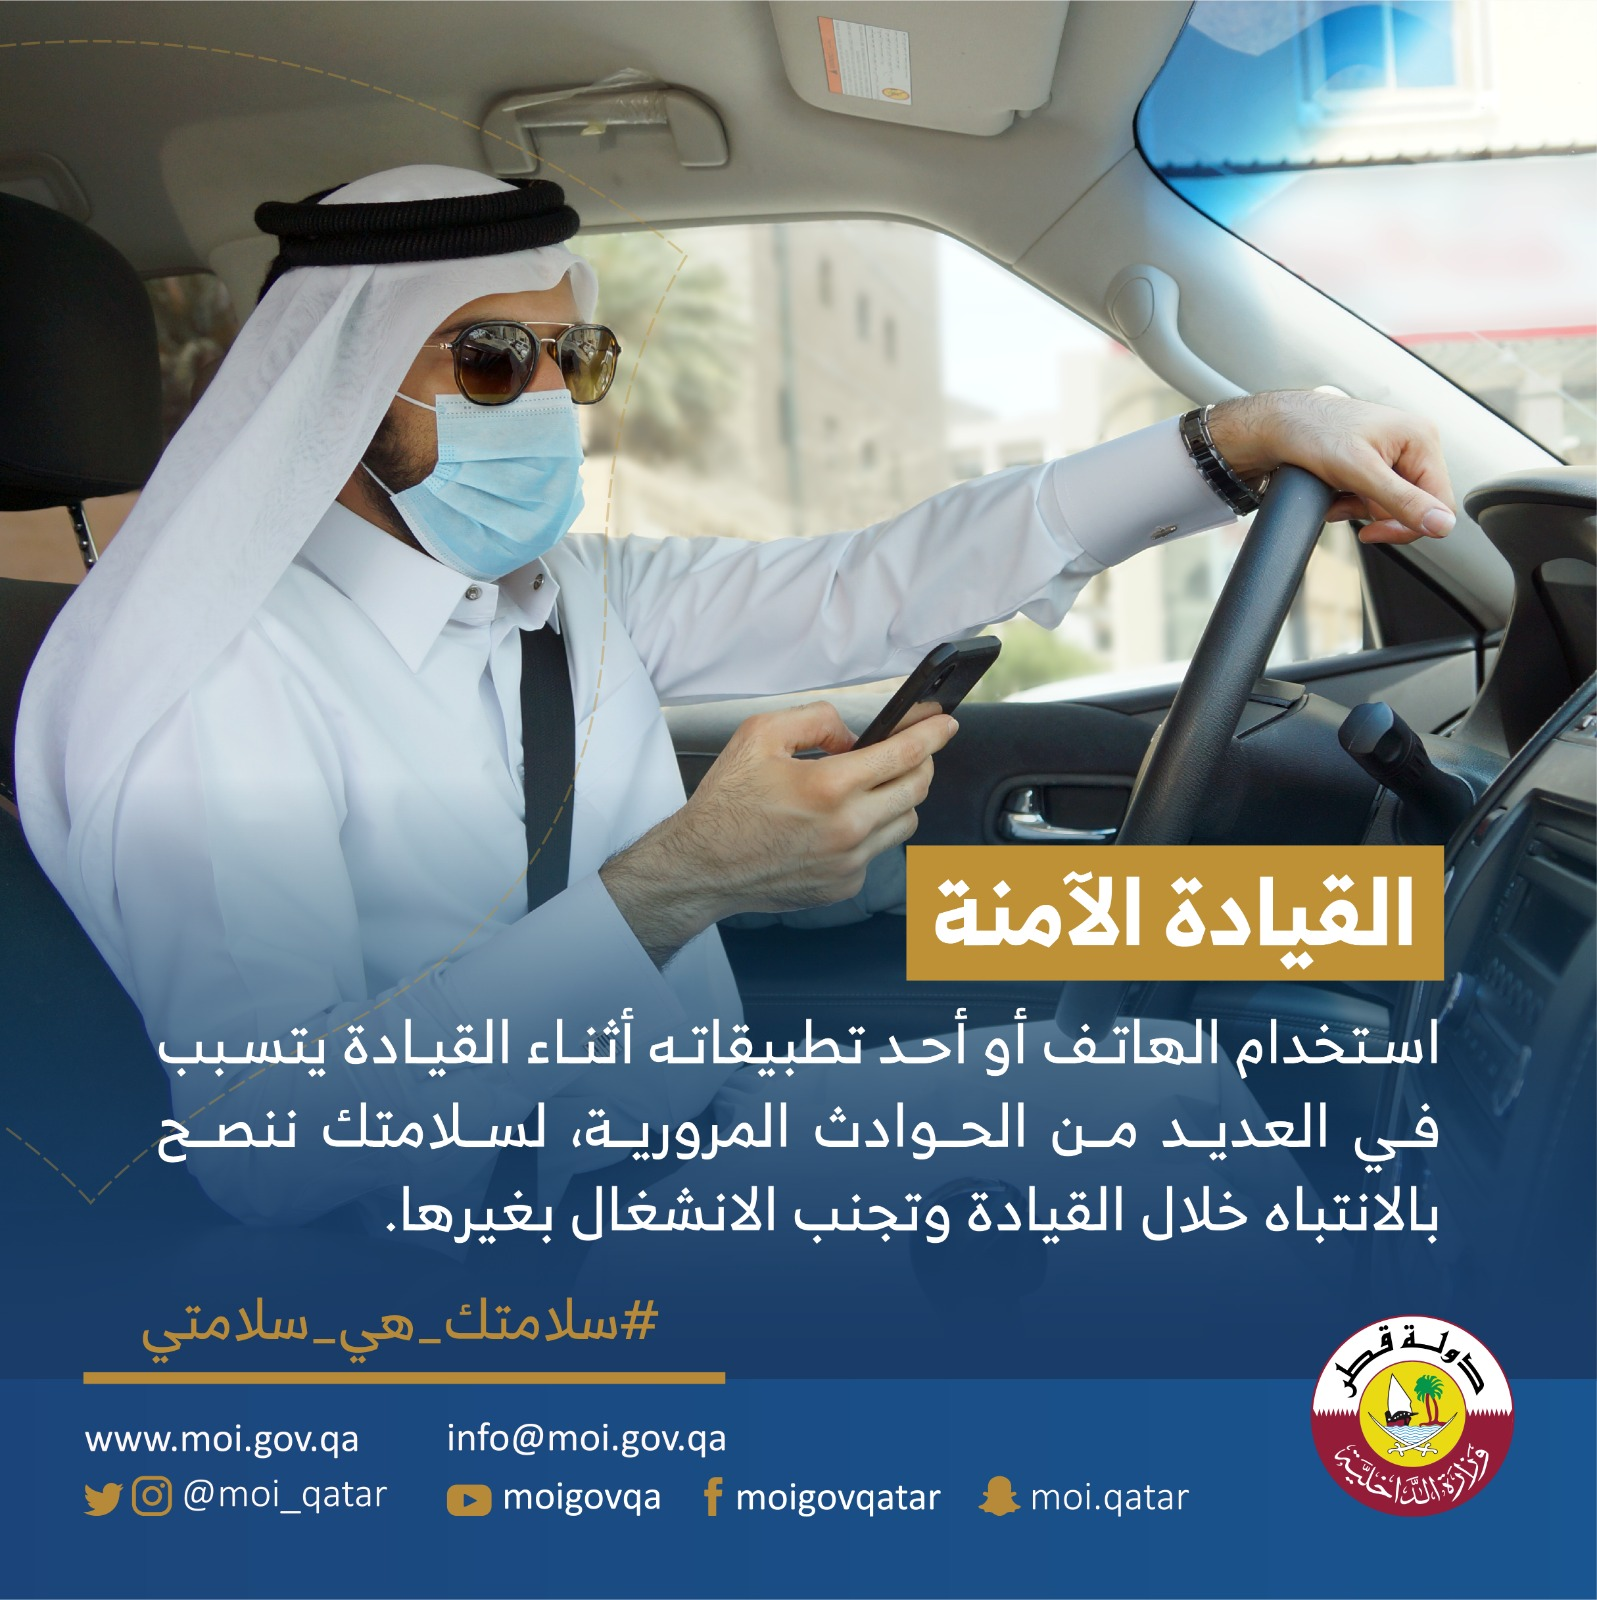 MOI calls on drivers not to be busy with mobile